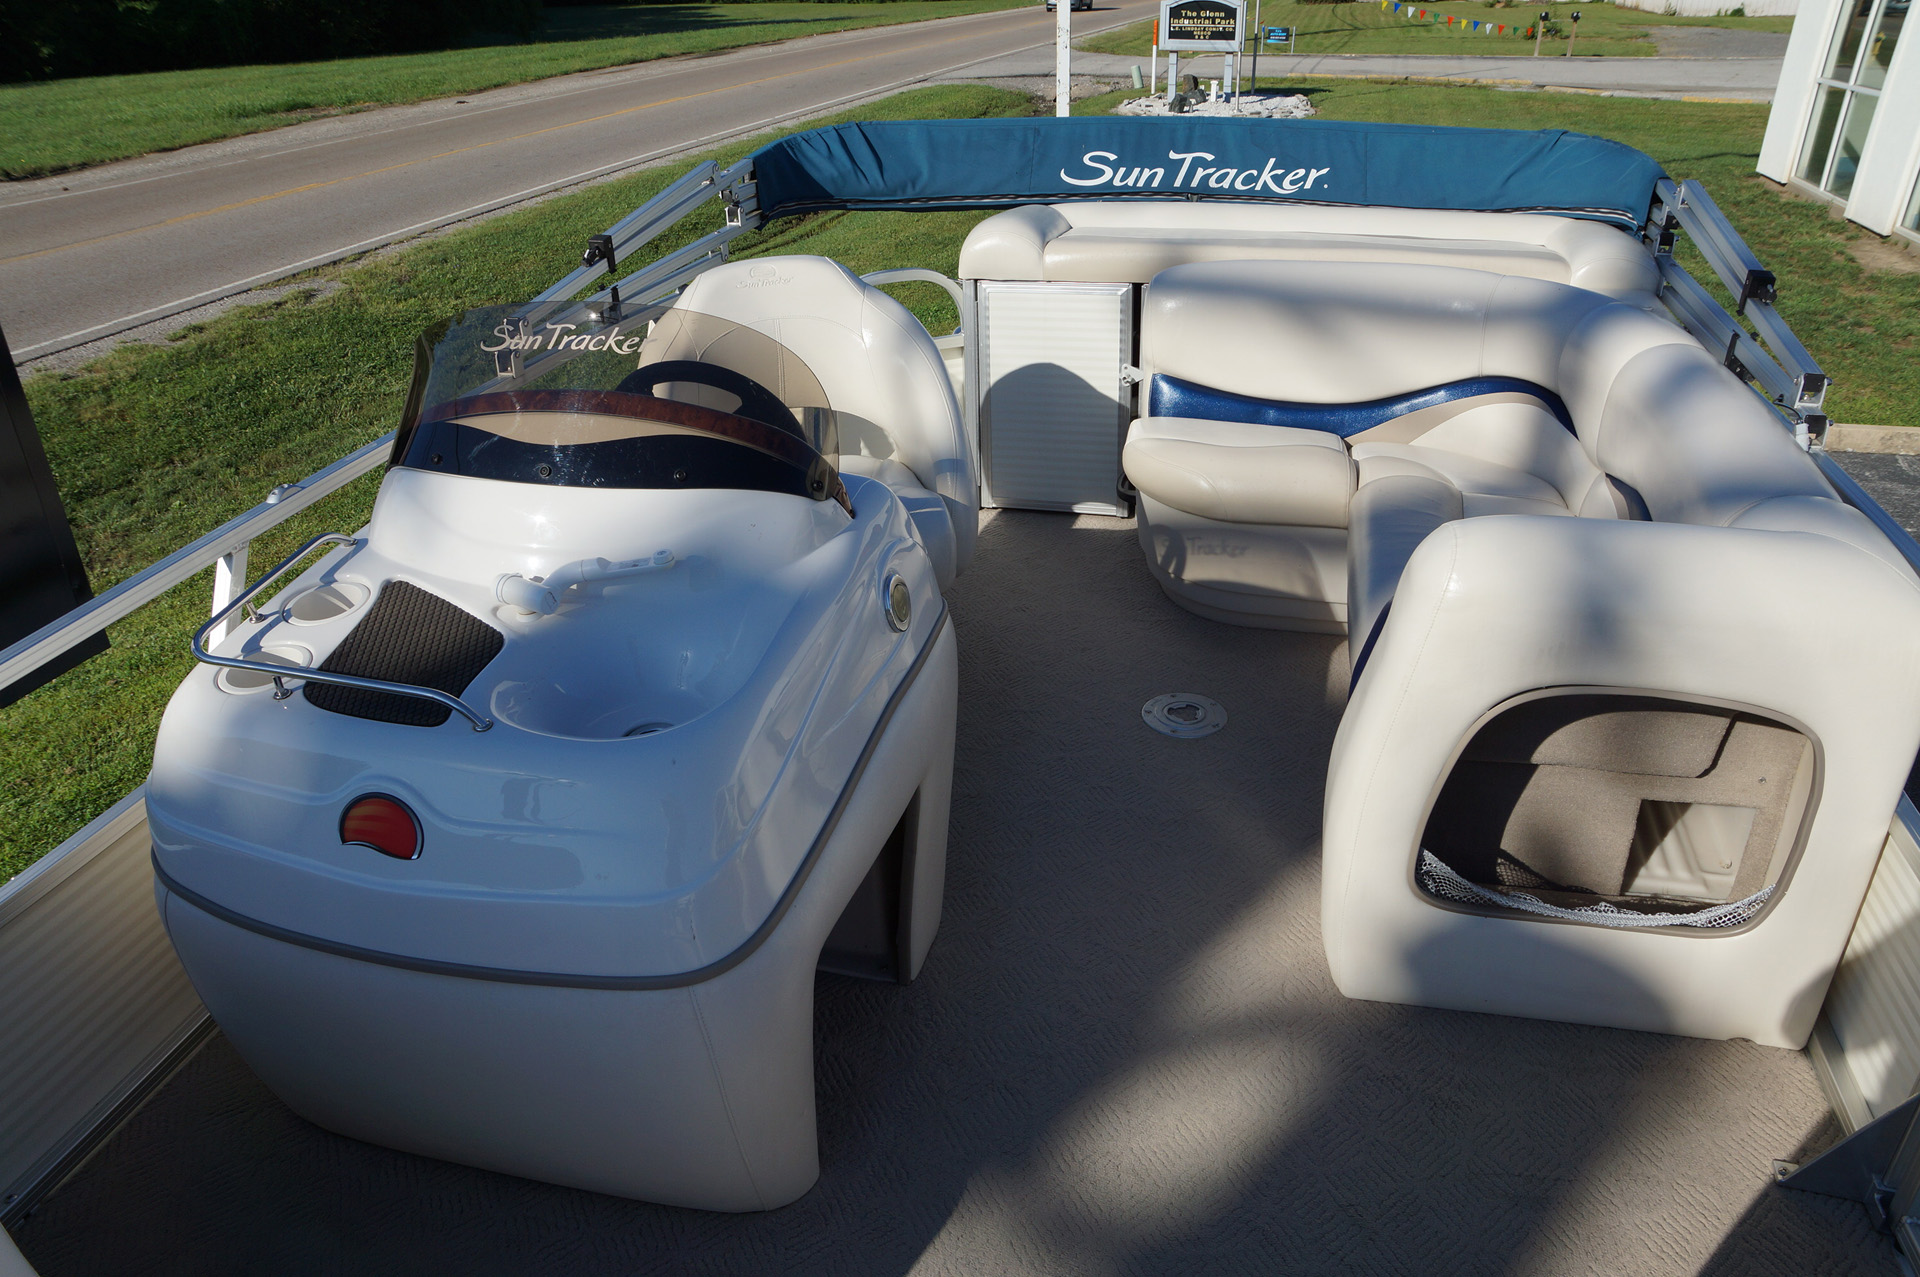 2010-tracker-party-barge-21-17